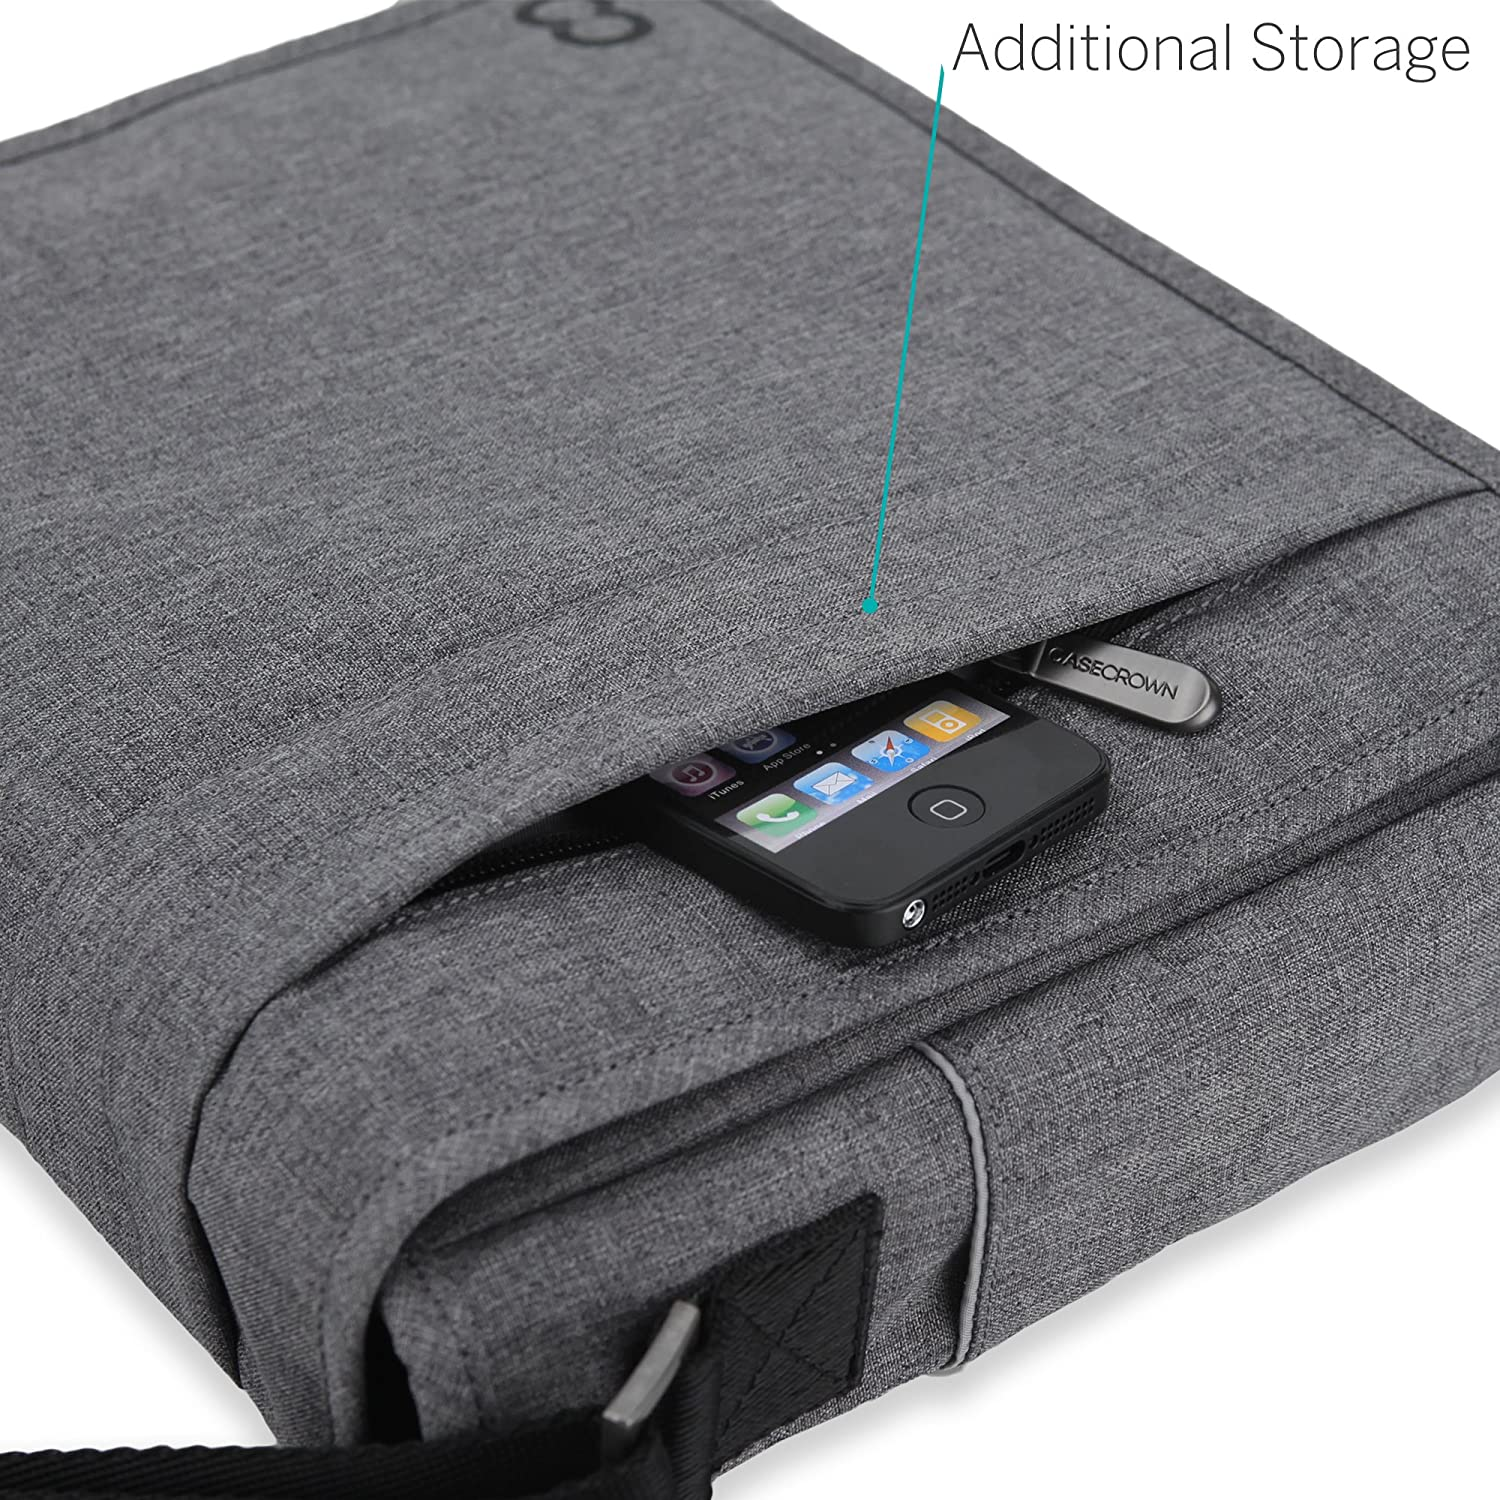 Amazon 12 Inch MacBook Bag CaseCrown Campus North Messenger Charcoal Gray Computers Accessories